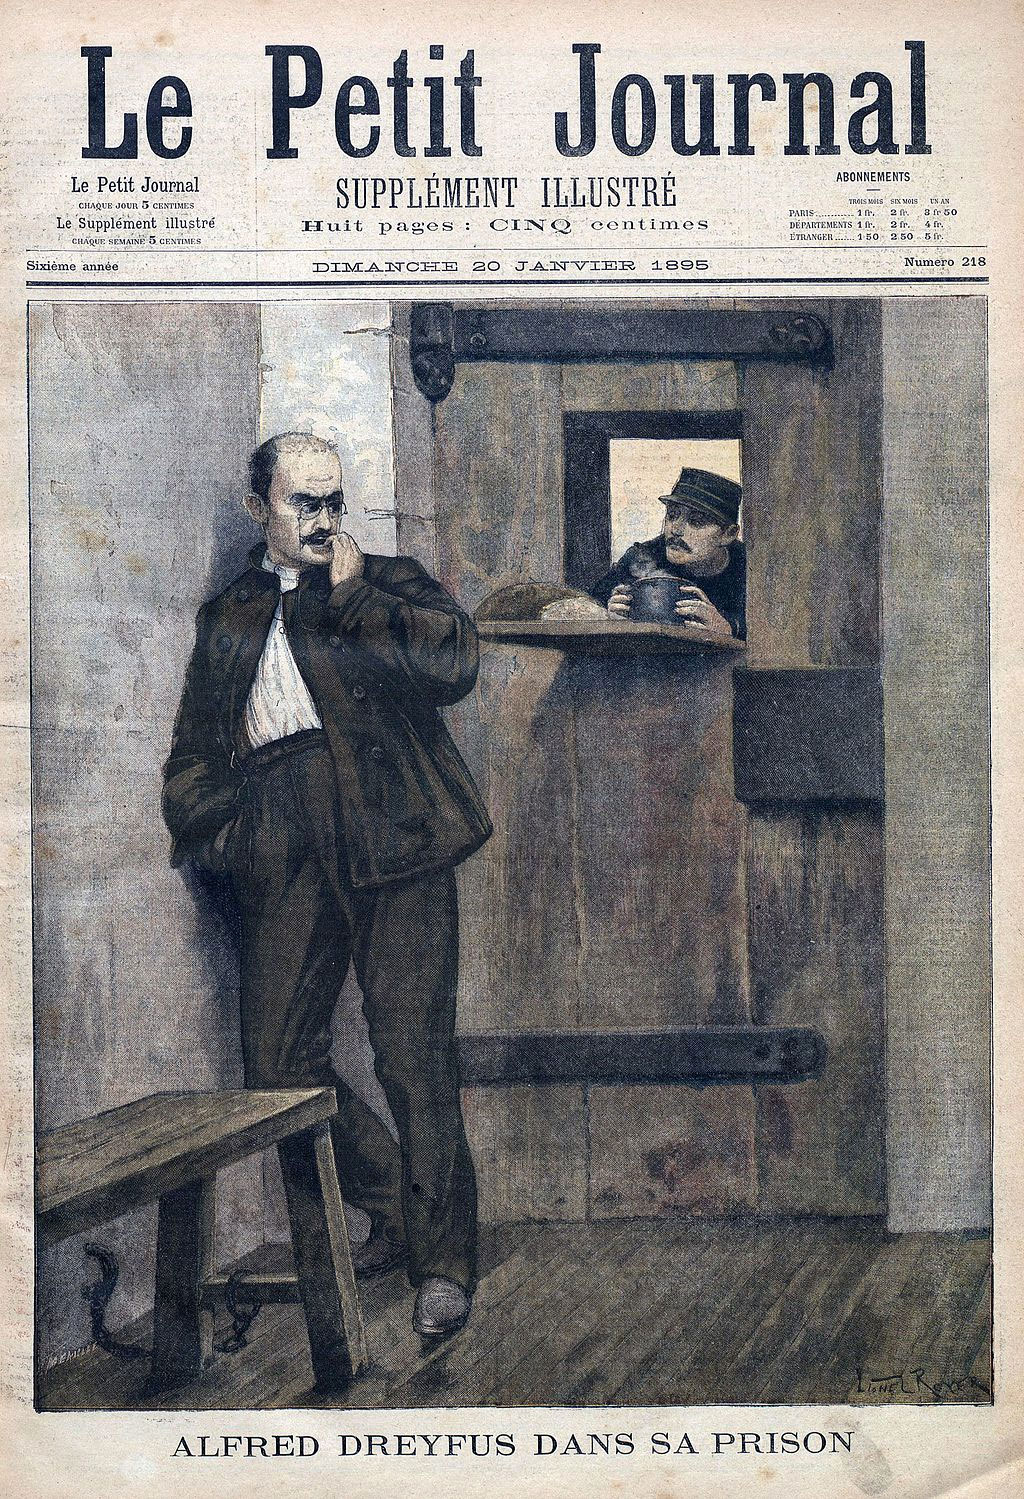 Cover of Le Petit Journal, 20 January 1895 (illustration by Lionel Royer and Fortuné Méaulle)